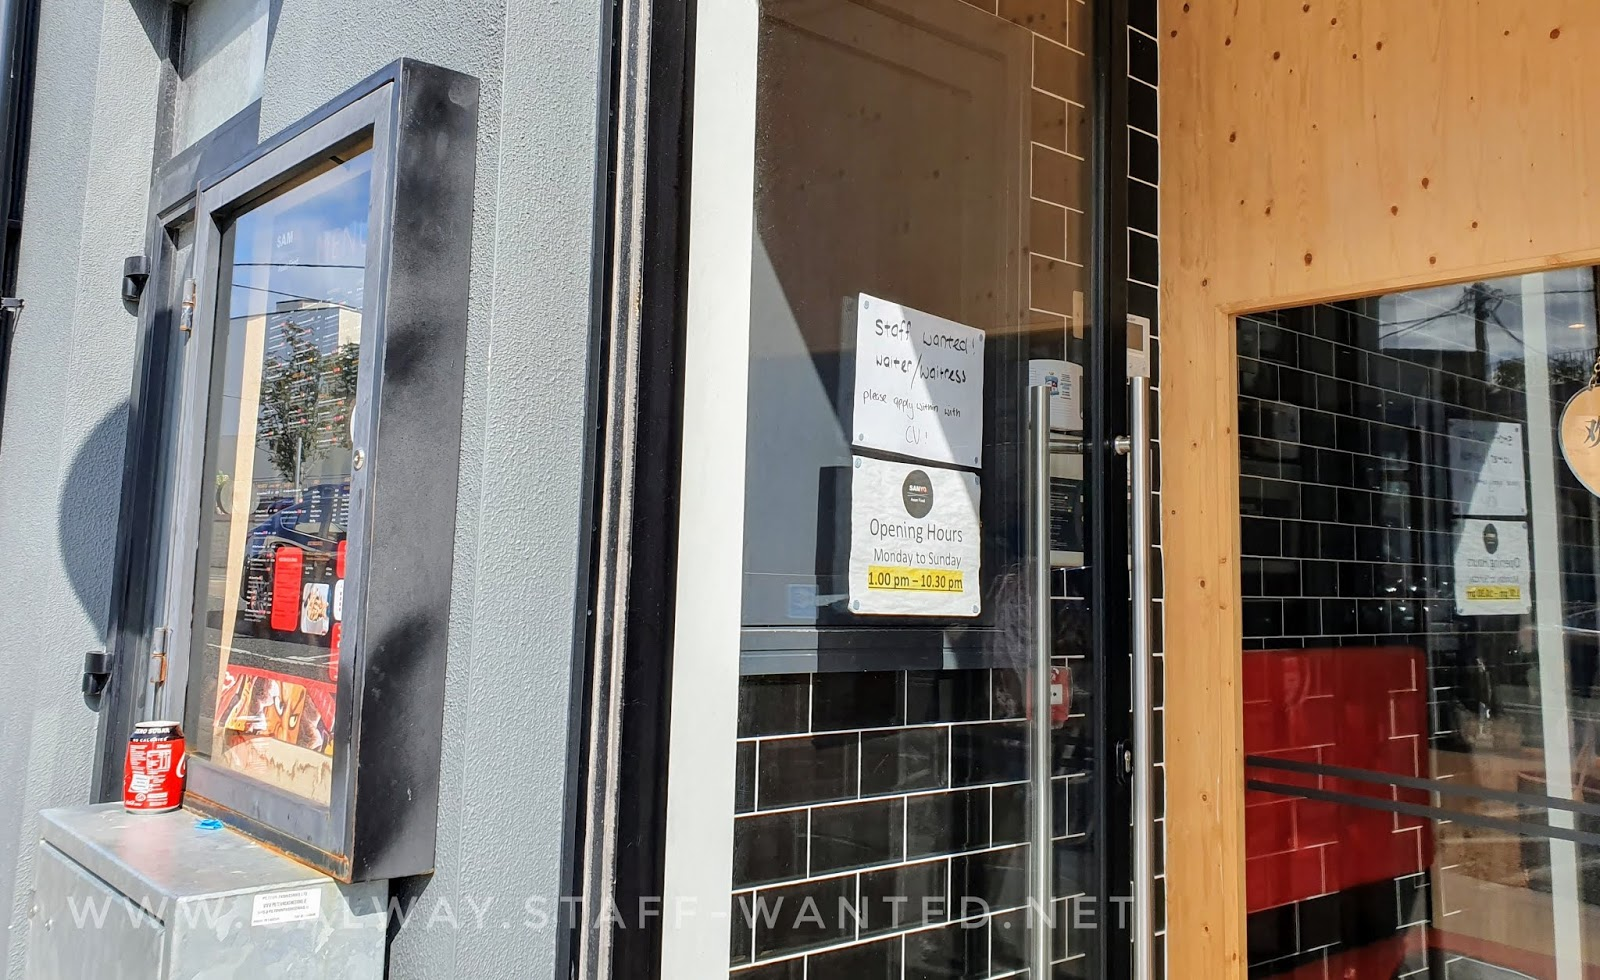 front door showing opening hours and closing time as well as staff-wanted sign.